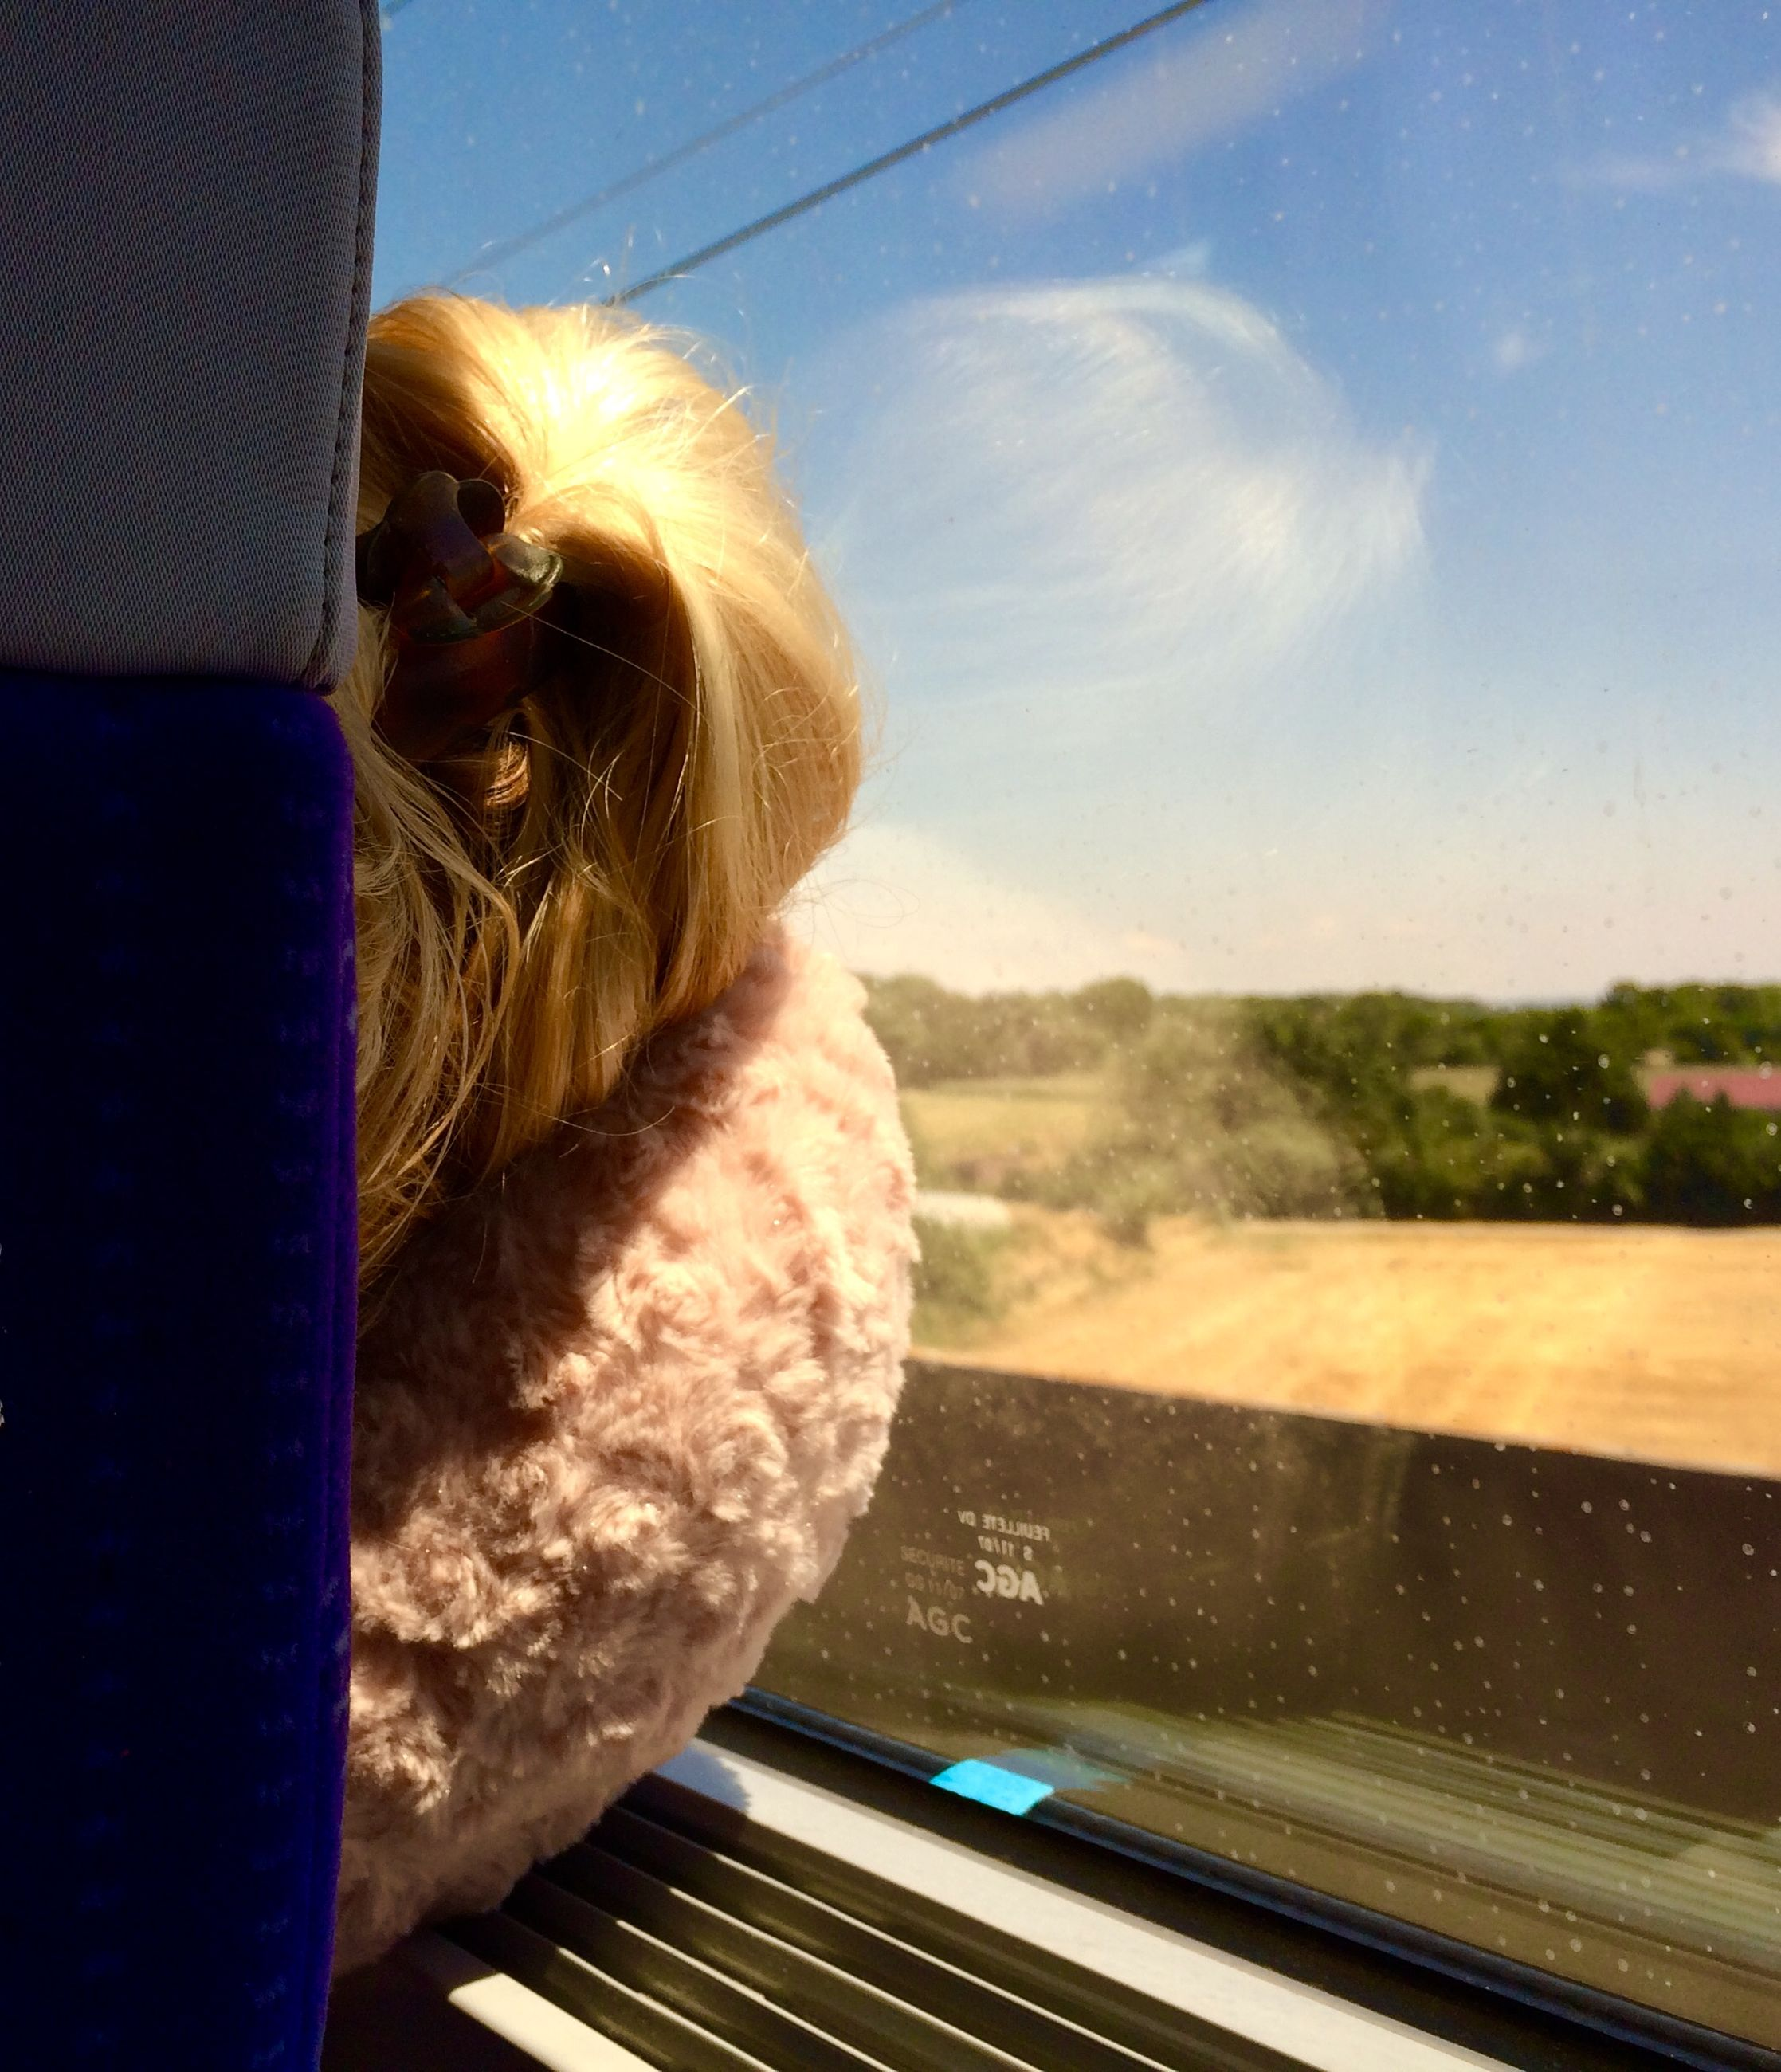 transportation, sky, window, glass - material, transparent, car, side view, looking through window, sunlight, lifestyles, rear view, railroad track, day, land vehicle, leisure activity, travel, looking away, mode of transport